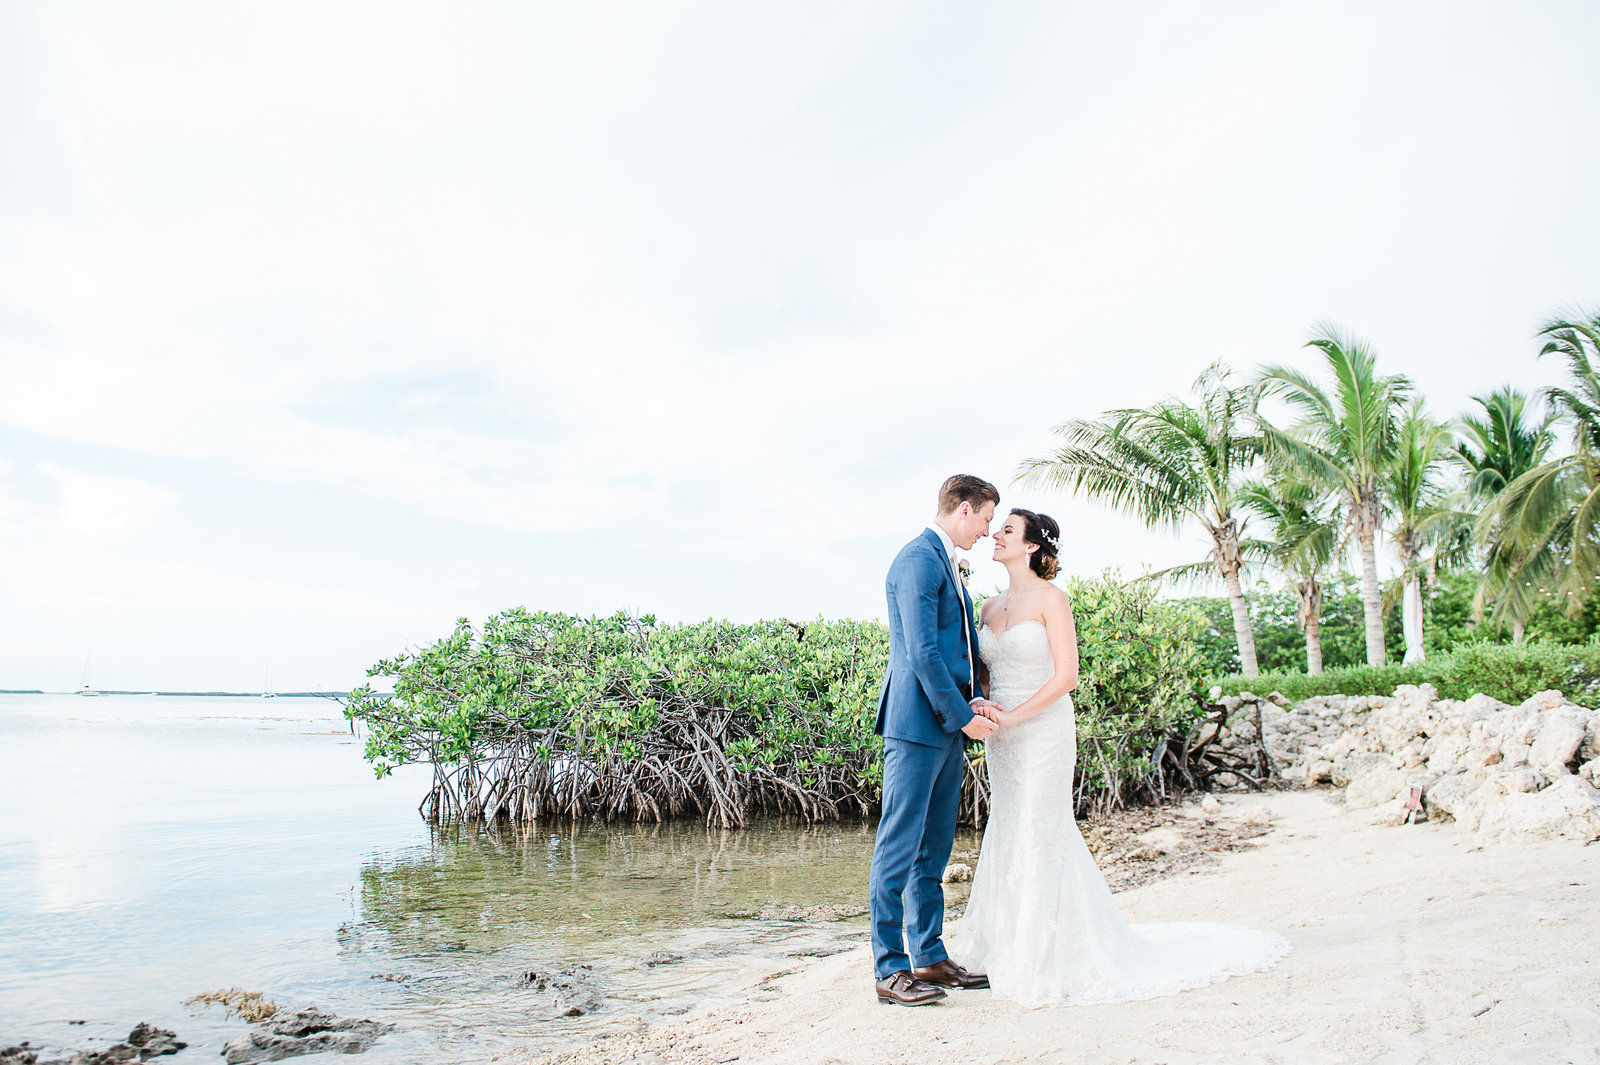 Luxury Wedding Photography in Florida Keys